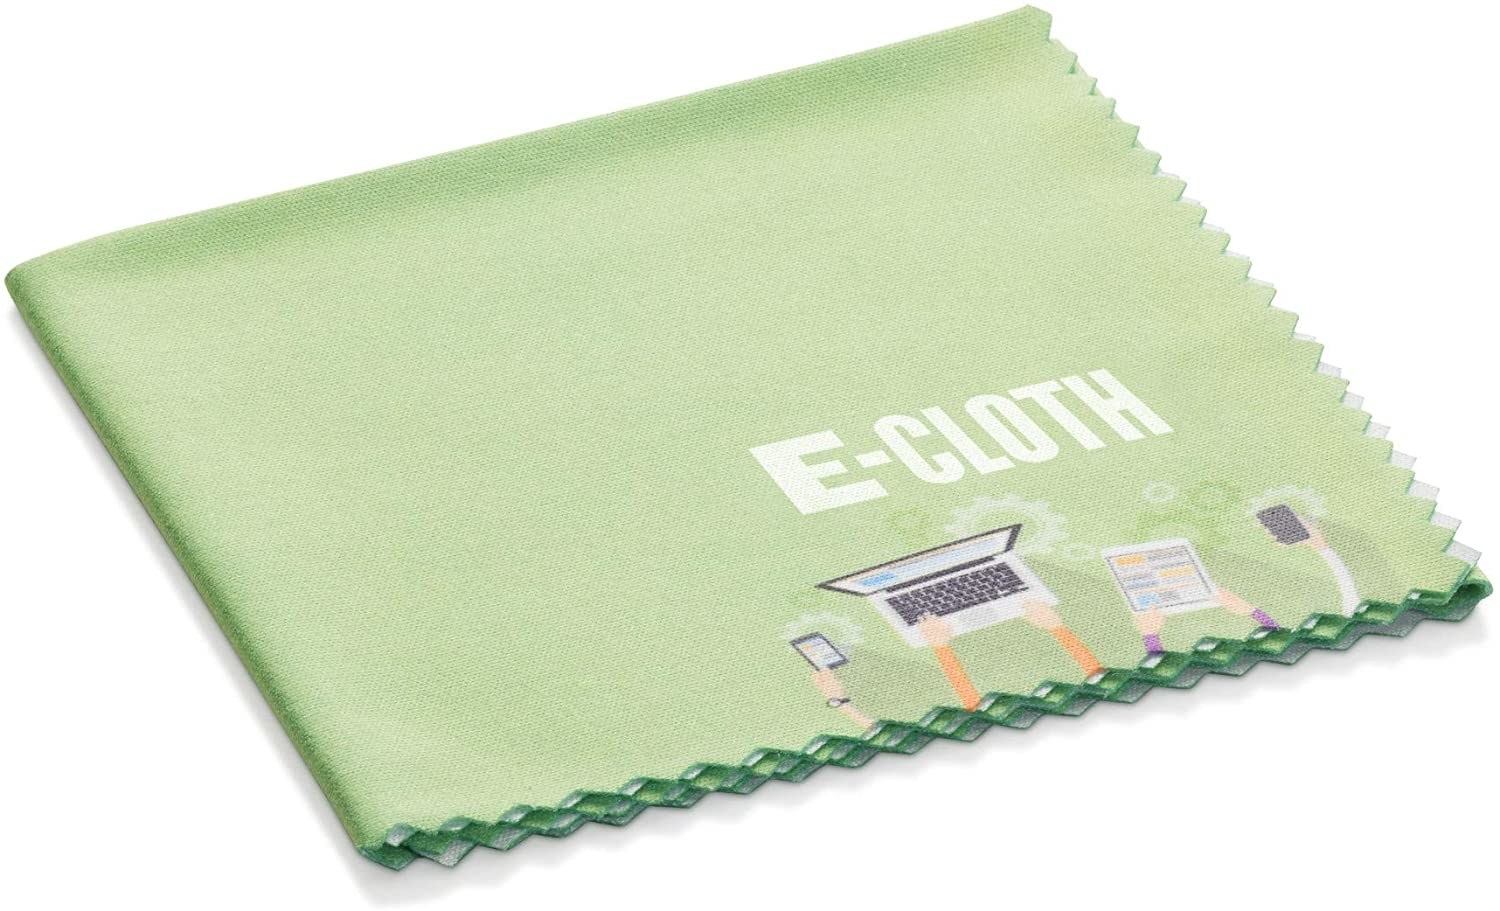 a green e-cleaning cloth